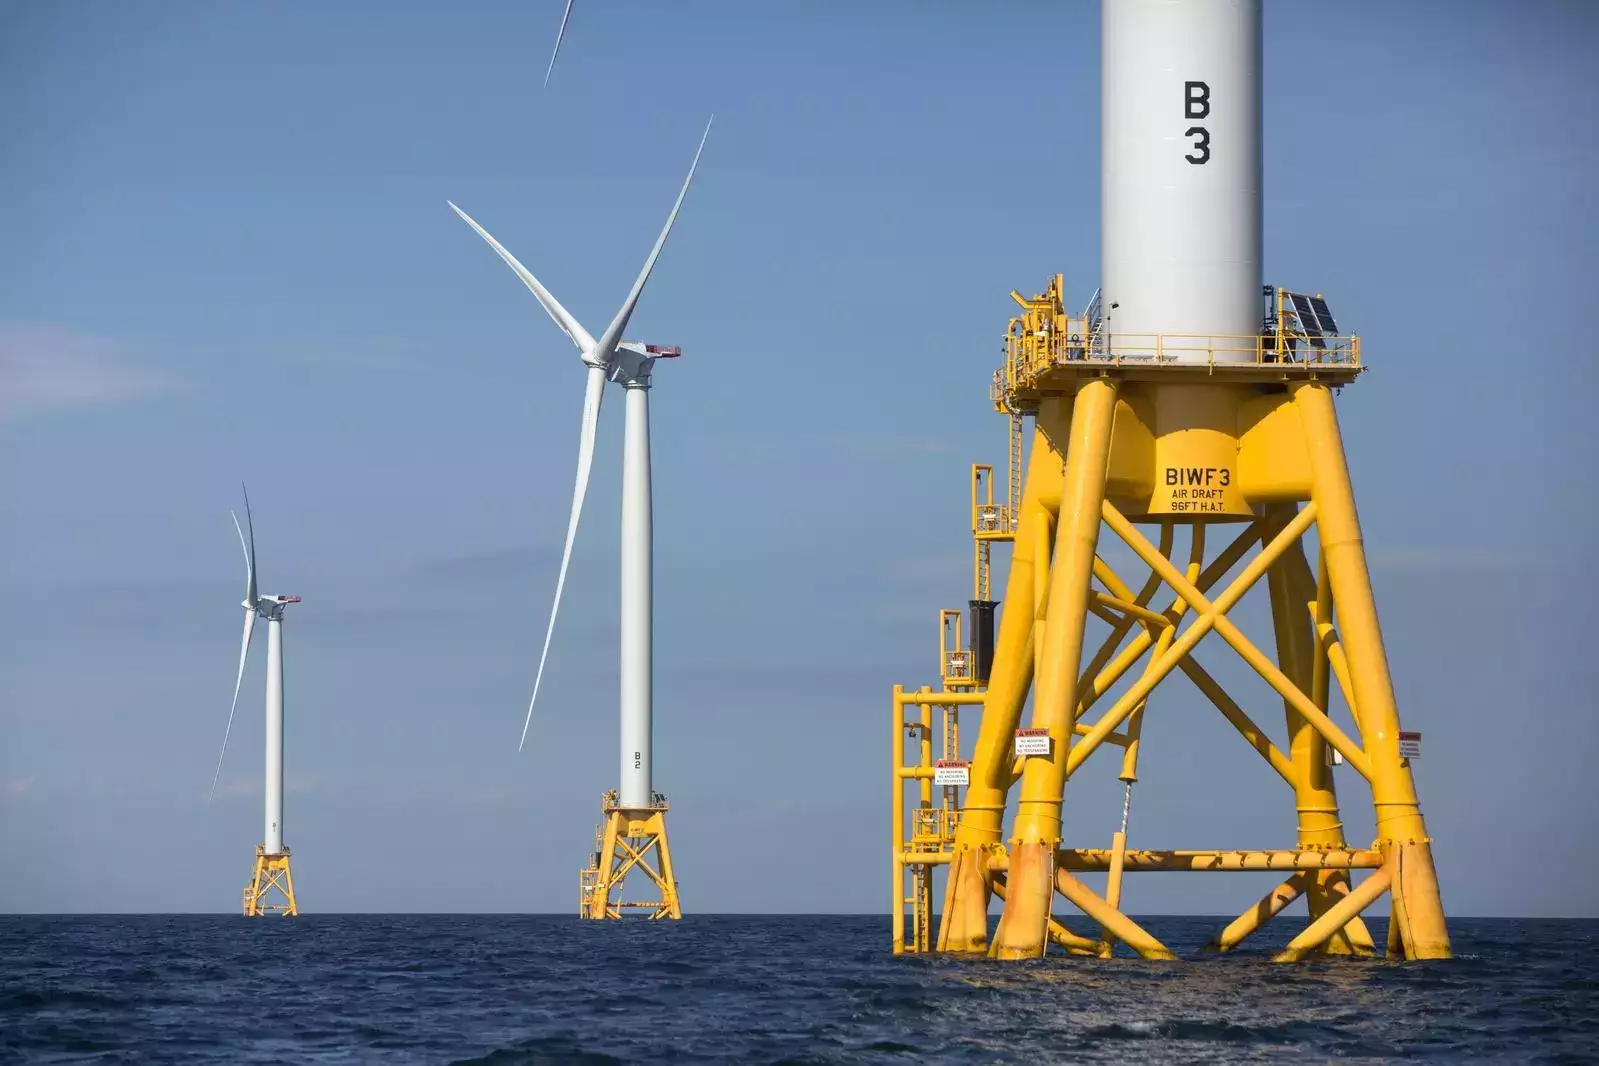 High stakes at sea in global rush for wind power